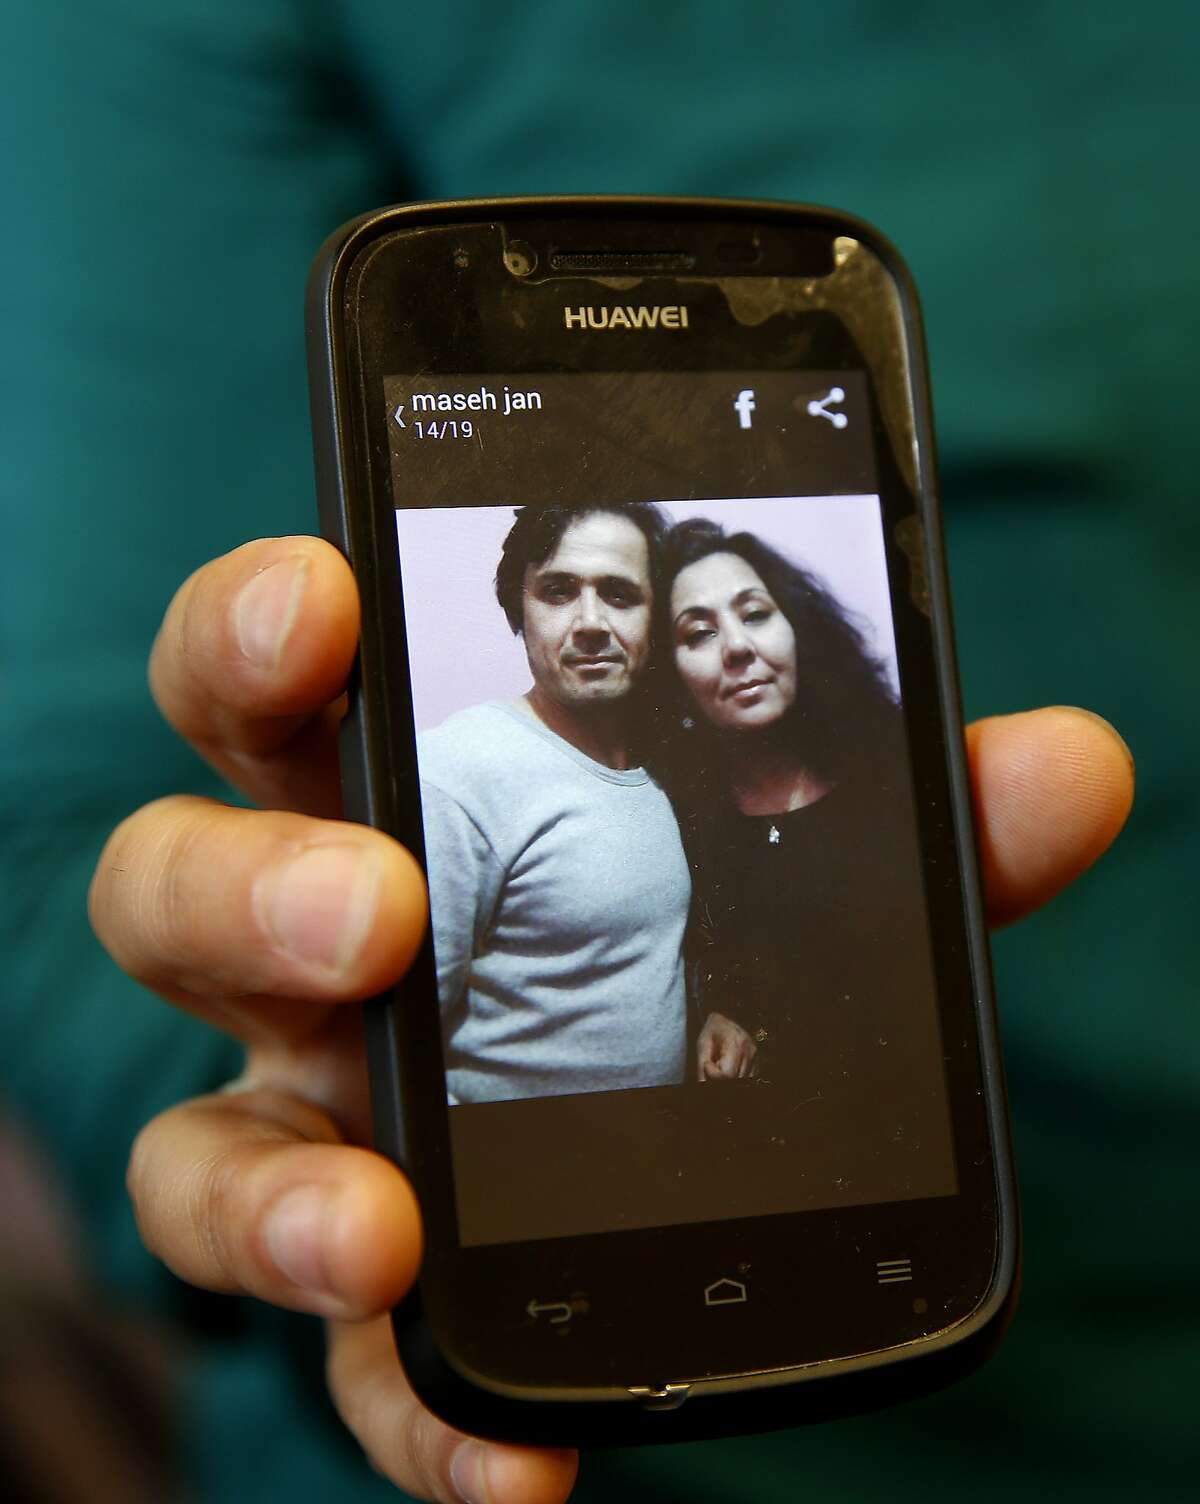 Fauzia Din holds a recent picture of her and her husband Kanishka on her smart phone Tuesday February 17, 2015 in San Francisco, Calif. Fauzia Din, a Fremont, Calif. resident, is scheduled to go before the U.S. Supreme Court soon. She wants the government to state the reason it denied a visa to her husband, who is in Afghanistan. The government says the reason was terrorism related, she says he wouldn't hurt a fly.